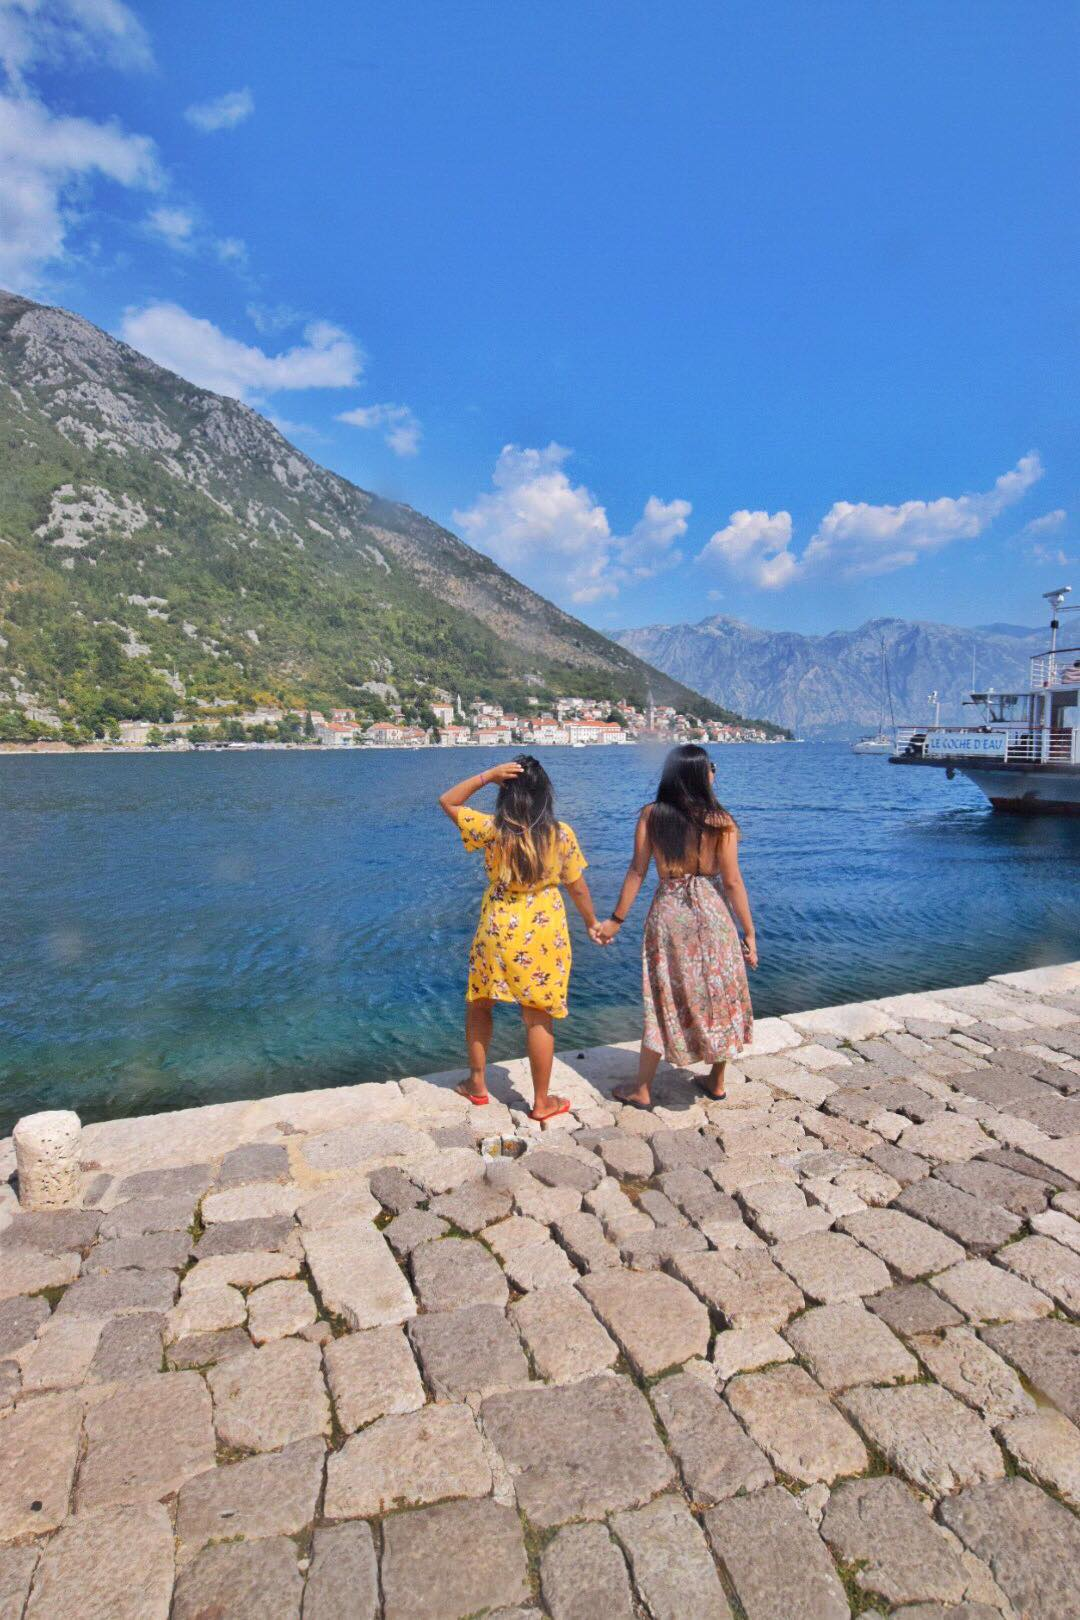 7 Reasons Why Herceg Novi in Montenegro Is The Next Mediterranean Hotspot To Watch Out For (and why you SHOULD visit ASAP)